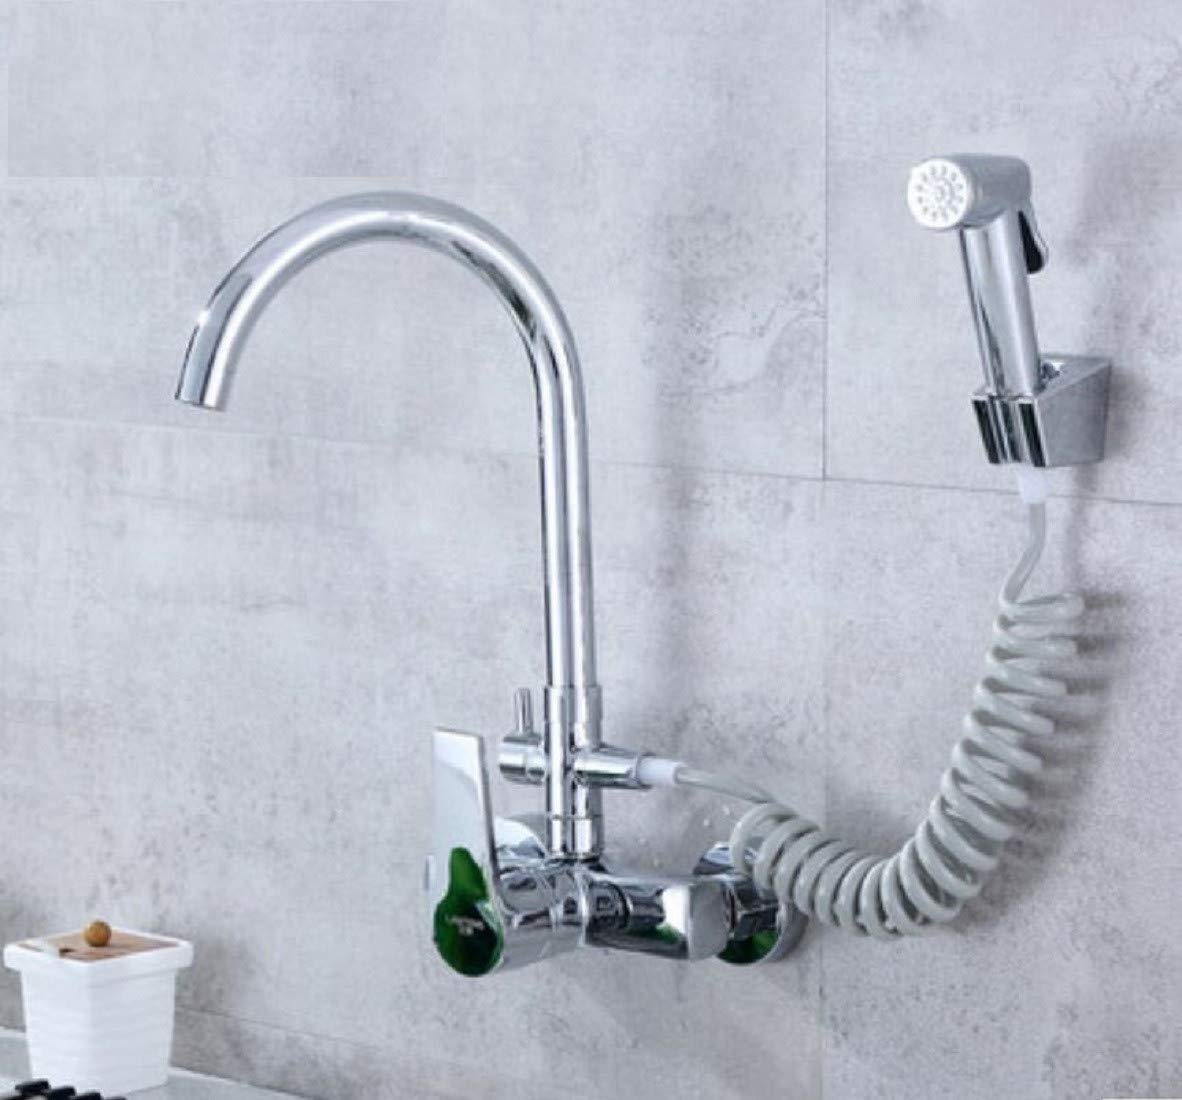 Kitchen Faucet Single Double Hole Into The Wall Type Kitchen Multi-Purpose Spray Gun Laundry Basin Sink Cold And Hot Faucet Kitchen Sink Faucets Basin Mixer Faucet